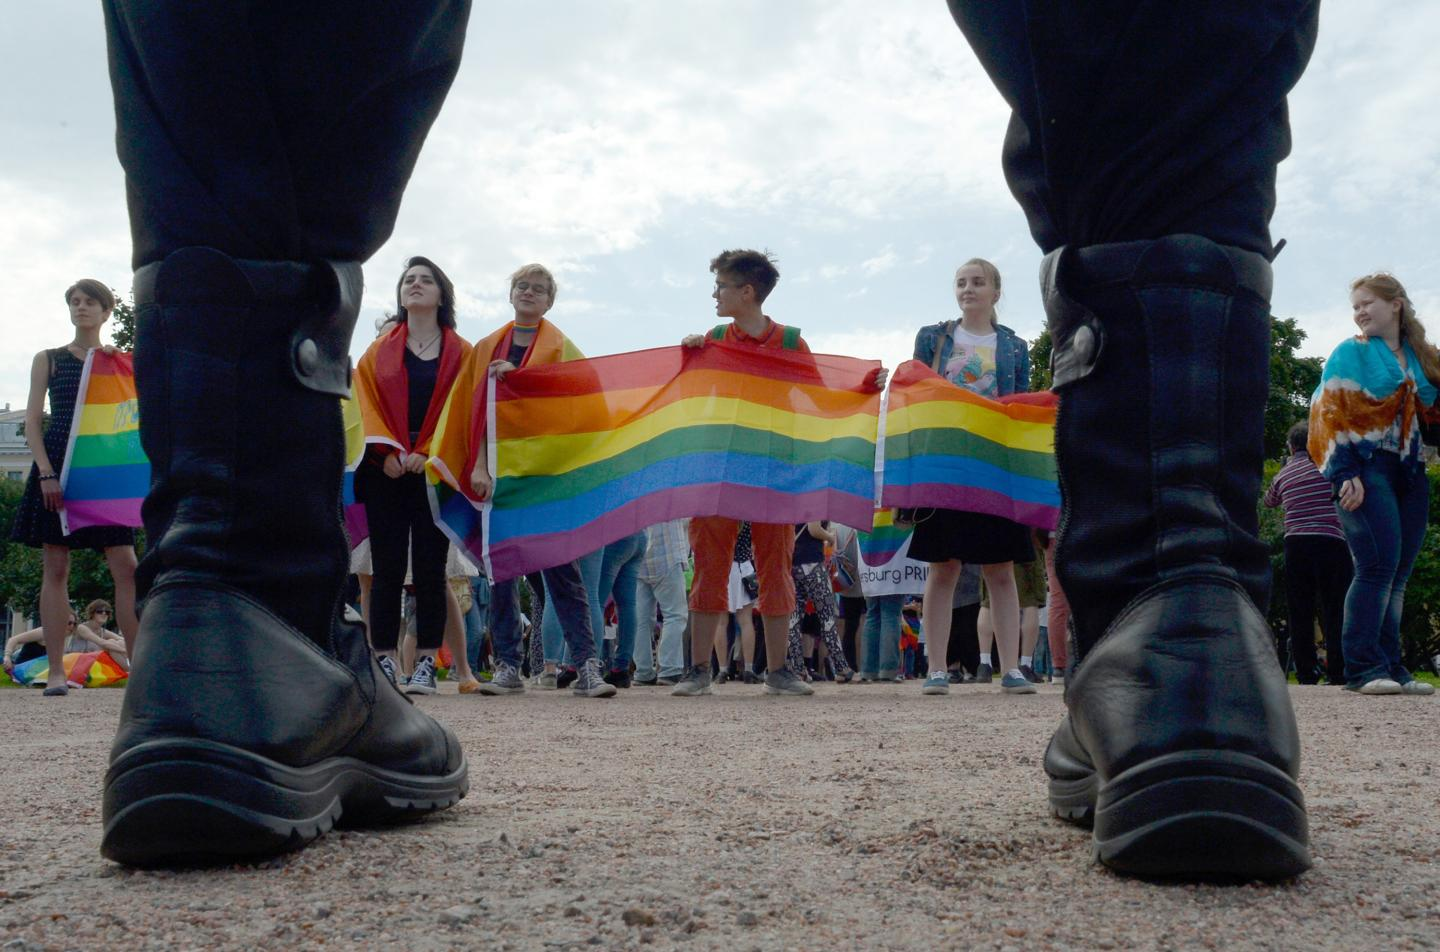 Russian LGBT pride parade approved and immediately banned in village of seven people https://t.co/olU5kDC7Ej https://t.co/hVSs5aA3qE